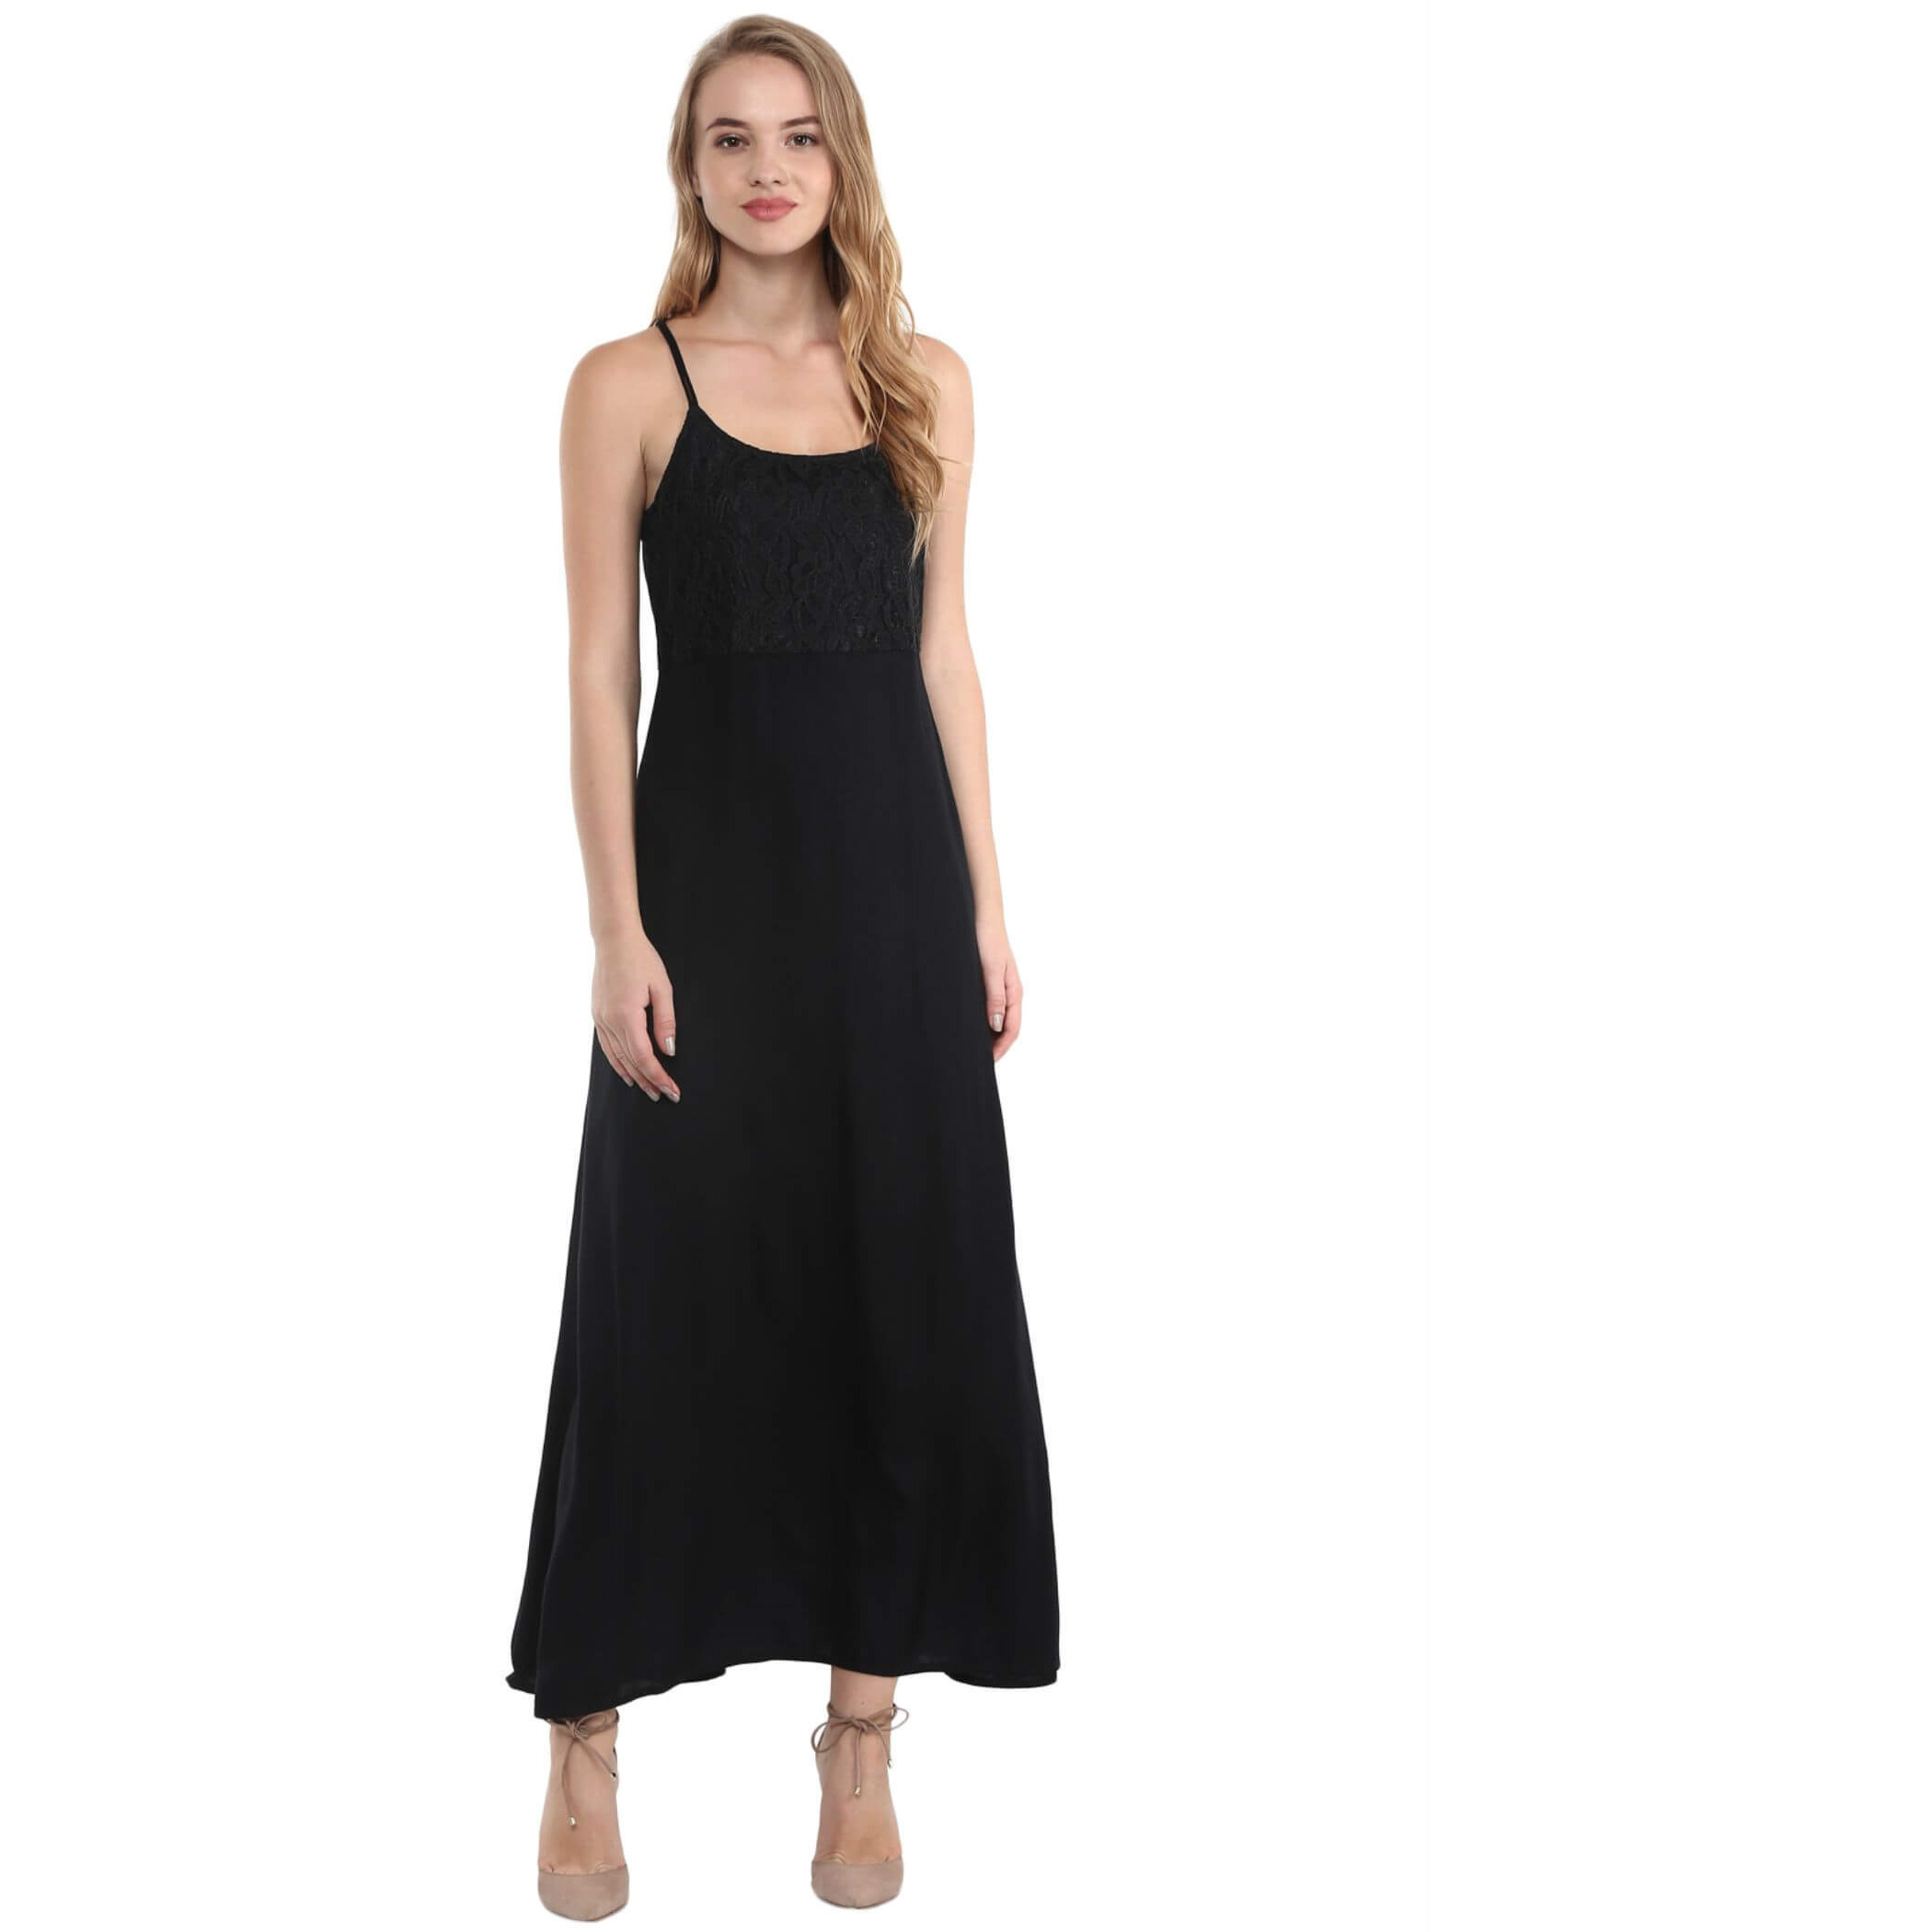 The Vanca Black Thin Strap Maxi Dress With Lace Top (Size:L)